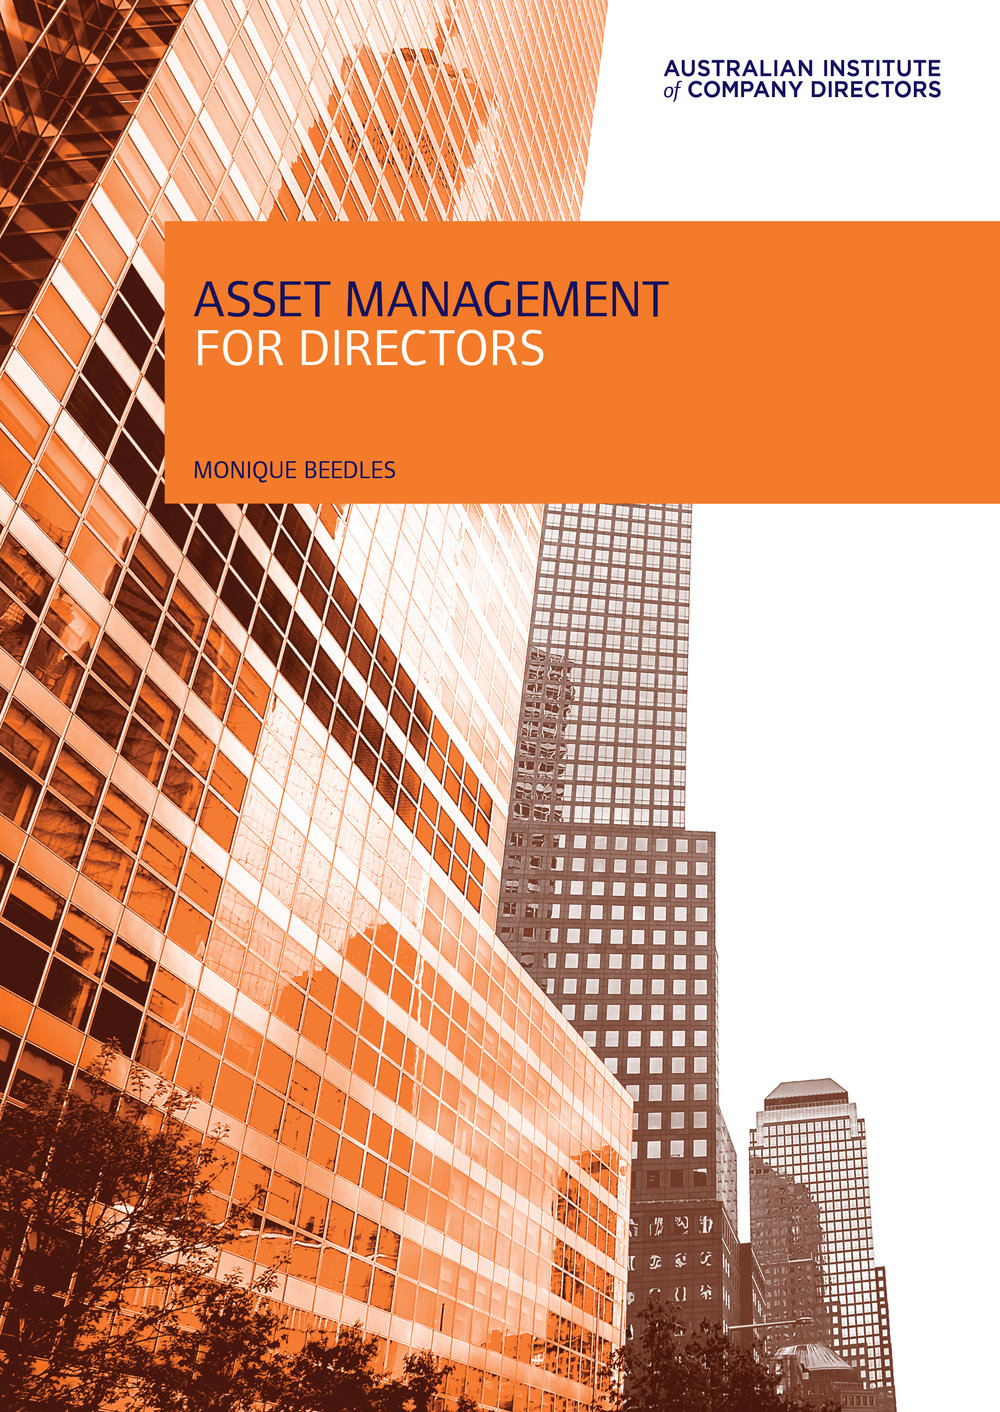 Asset Management for Directors - Today's board directors are faced with an increasingly complex operating environment. There is greater scrutiny from shareholders and regulators, and a diminishing ability to predict the future based on past experience. Asset Management for Directors aims to provide a clear framework for directors to address their asset management obligations. Creating value from the company's assets is a key responsibility of the board and forms part of its fiduciary duty. In this sense, board directors are asset managers.Through the context of the board's governance roles, this book outlines the importance of asset management from the board's perspective. The key points directors need to know about asset management are provided, without addressing technical aspects in too much detail. Rather, the book aims to inform the director who is not necessarily an expert in asset management on the fundamental knowledge they need to understand their company's asset management practices and to ask pertinent questions of management.Asset Management for Directors also provides guidance for executives and asset management specialists on the aspects of asset management that are of most interest to the board and advice on how they can best ensure that they provide relevant and timely information to inform board decision making.Each chapter includes a brief case study to highlight how the principles are applied in practice. These case studies cover a wide range of industries and help to illustrate the array of asset types, both tangible and intangible, that boards are responsible for.